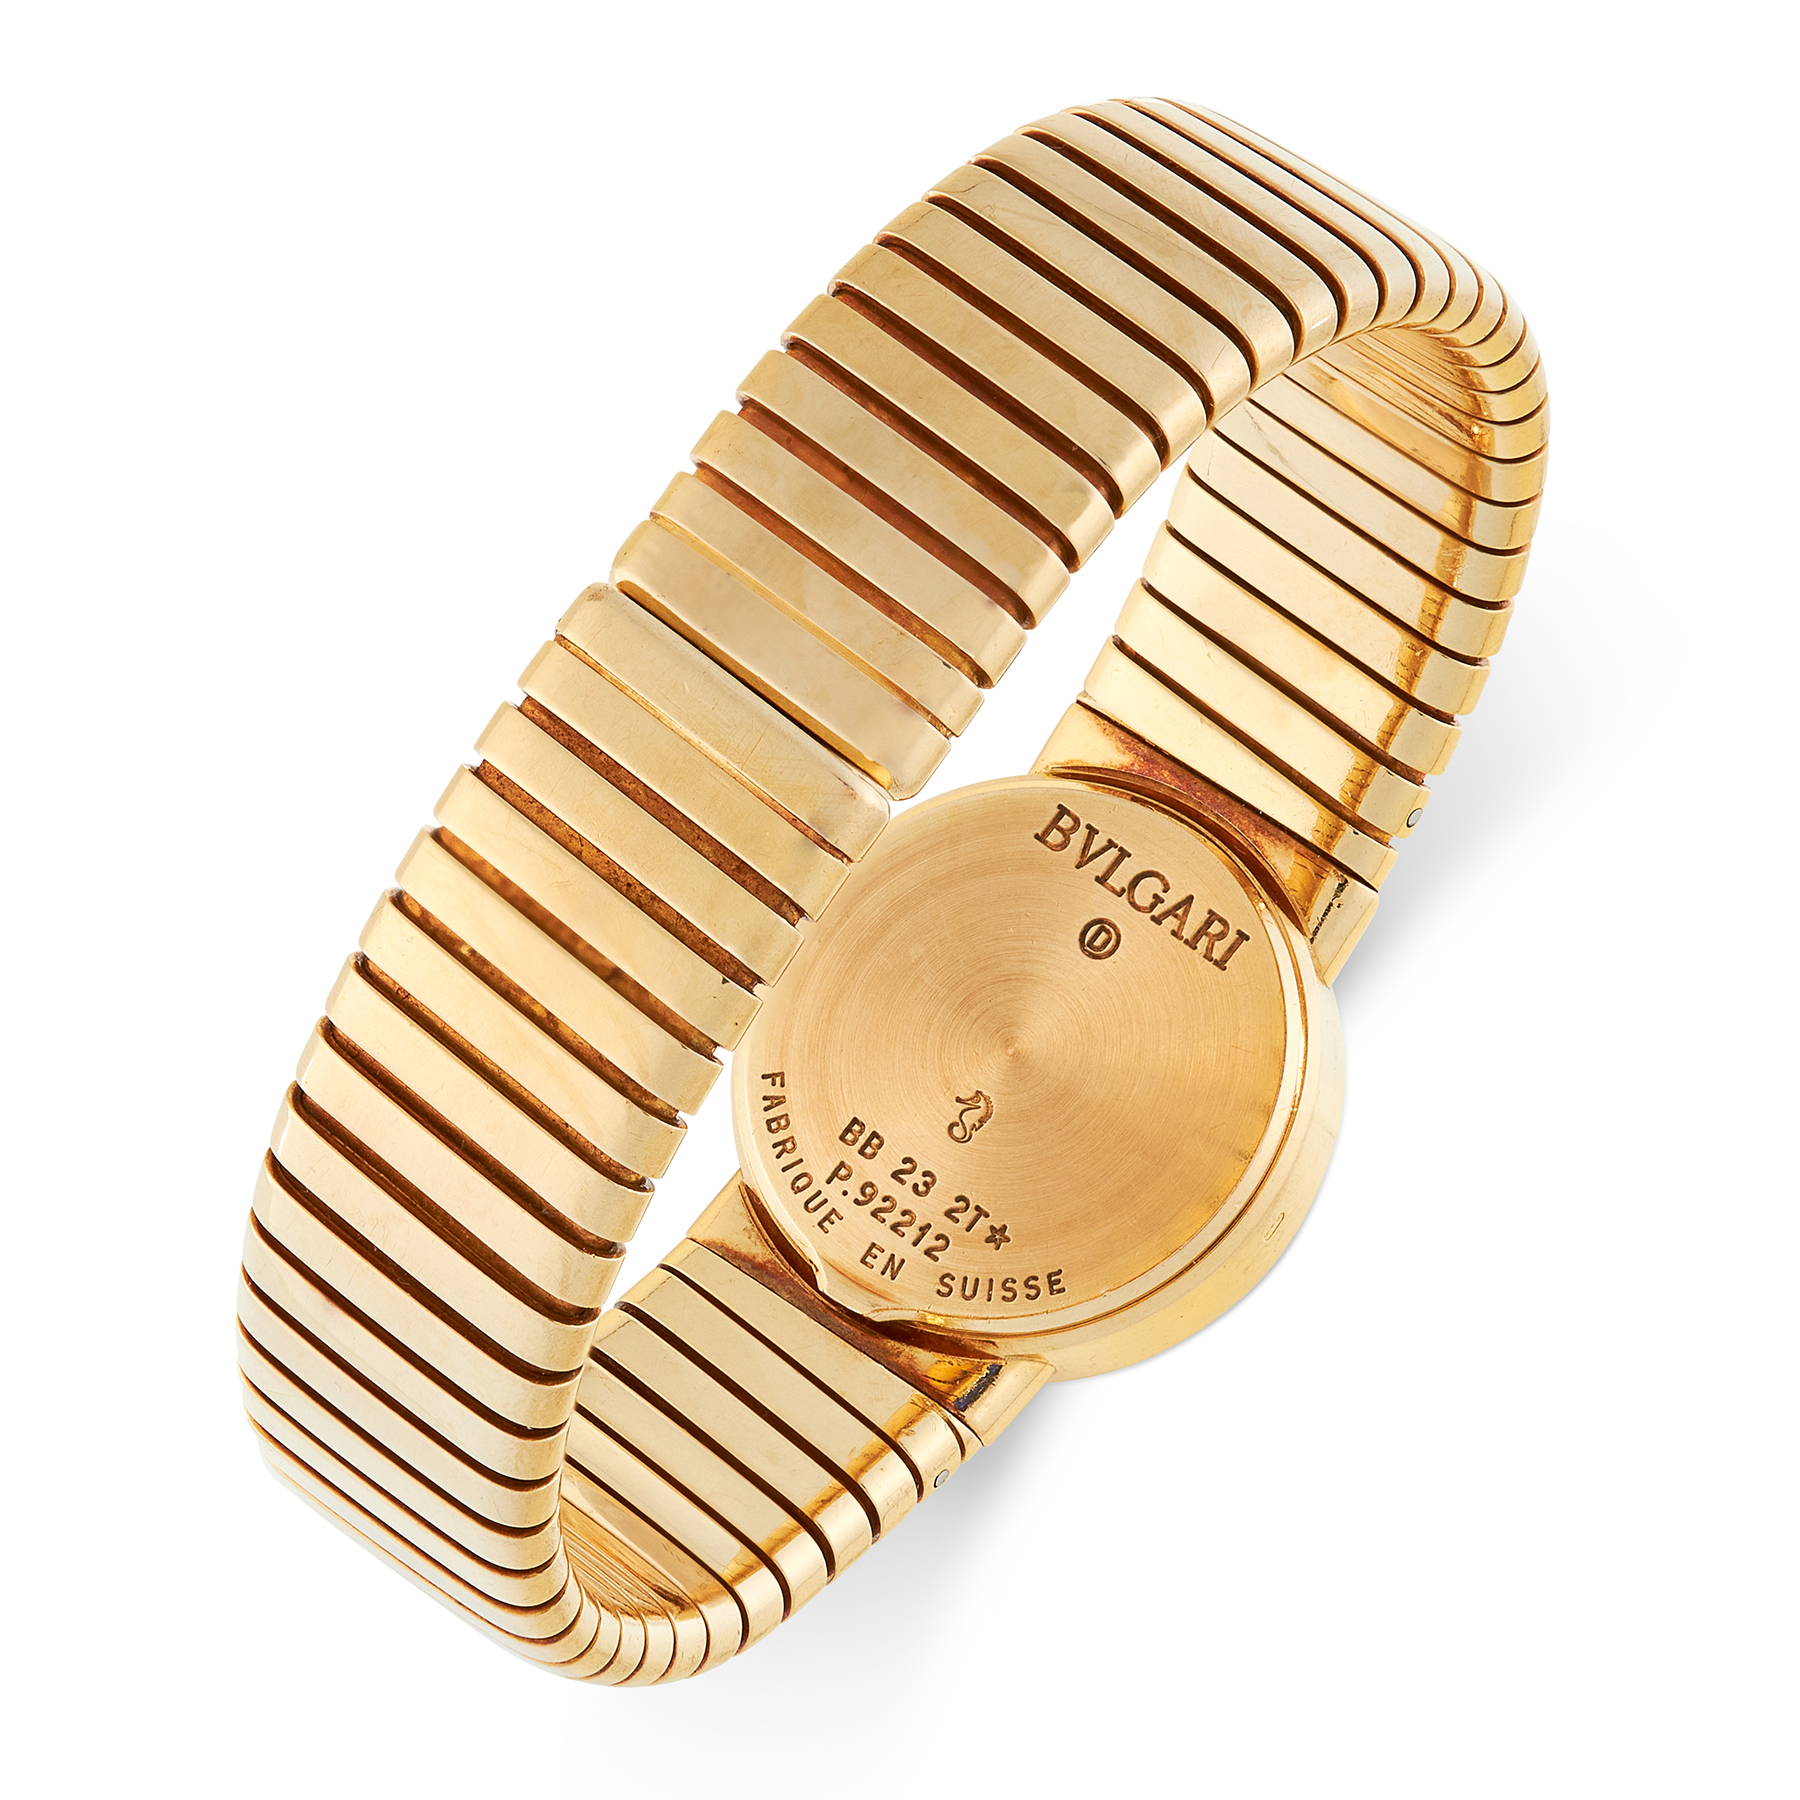 A GOLD TUBOGAS WRIST WATCH, BULGARI in 18ct yellow gold, set with a black face, signed Bulgari, - Image 2 of 2